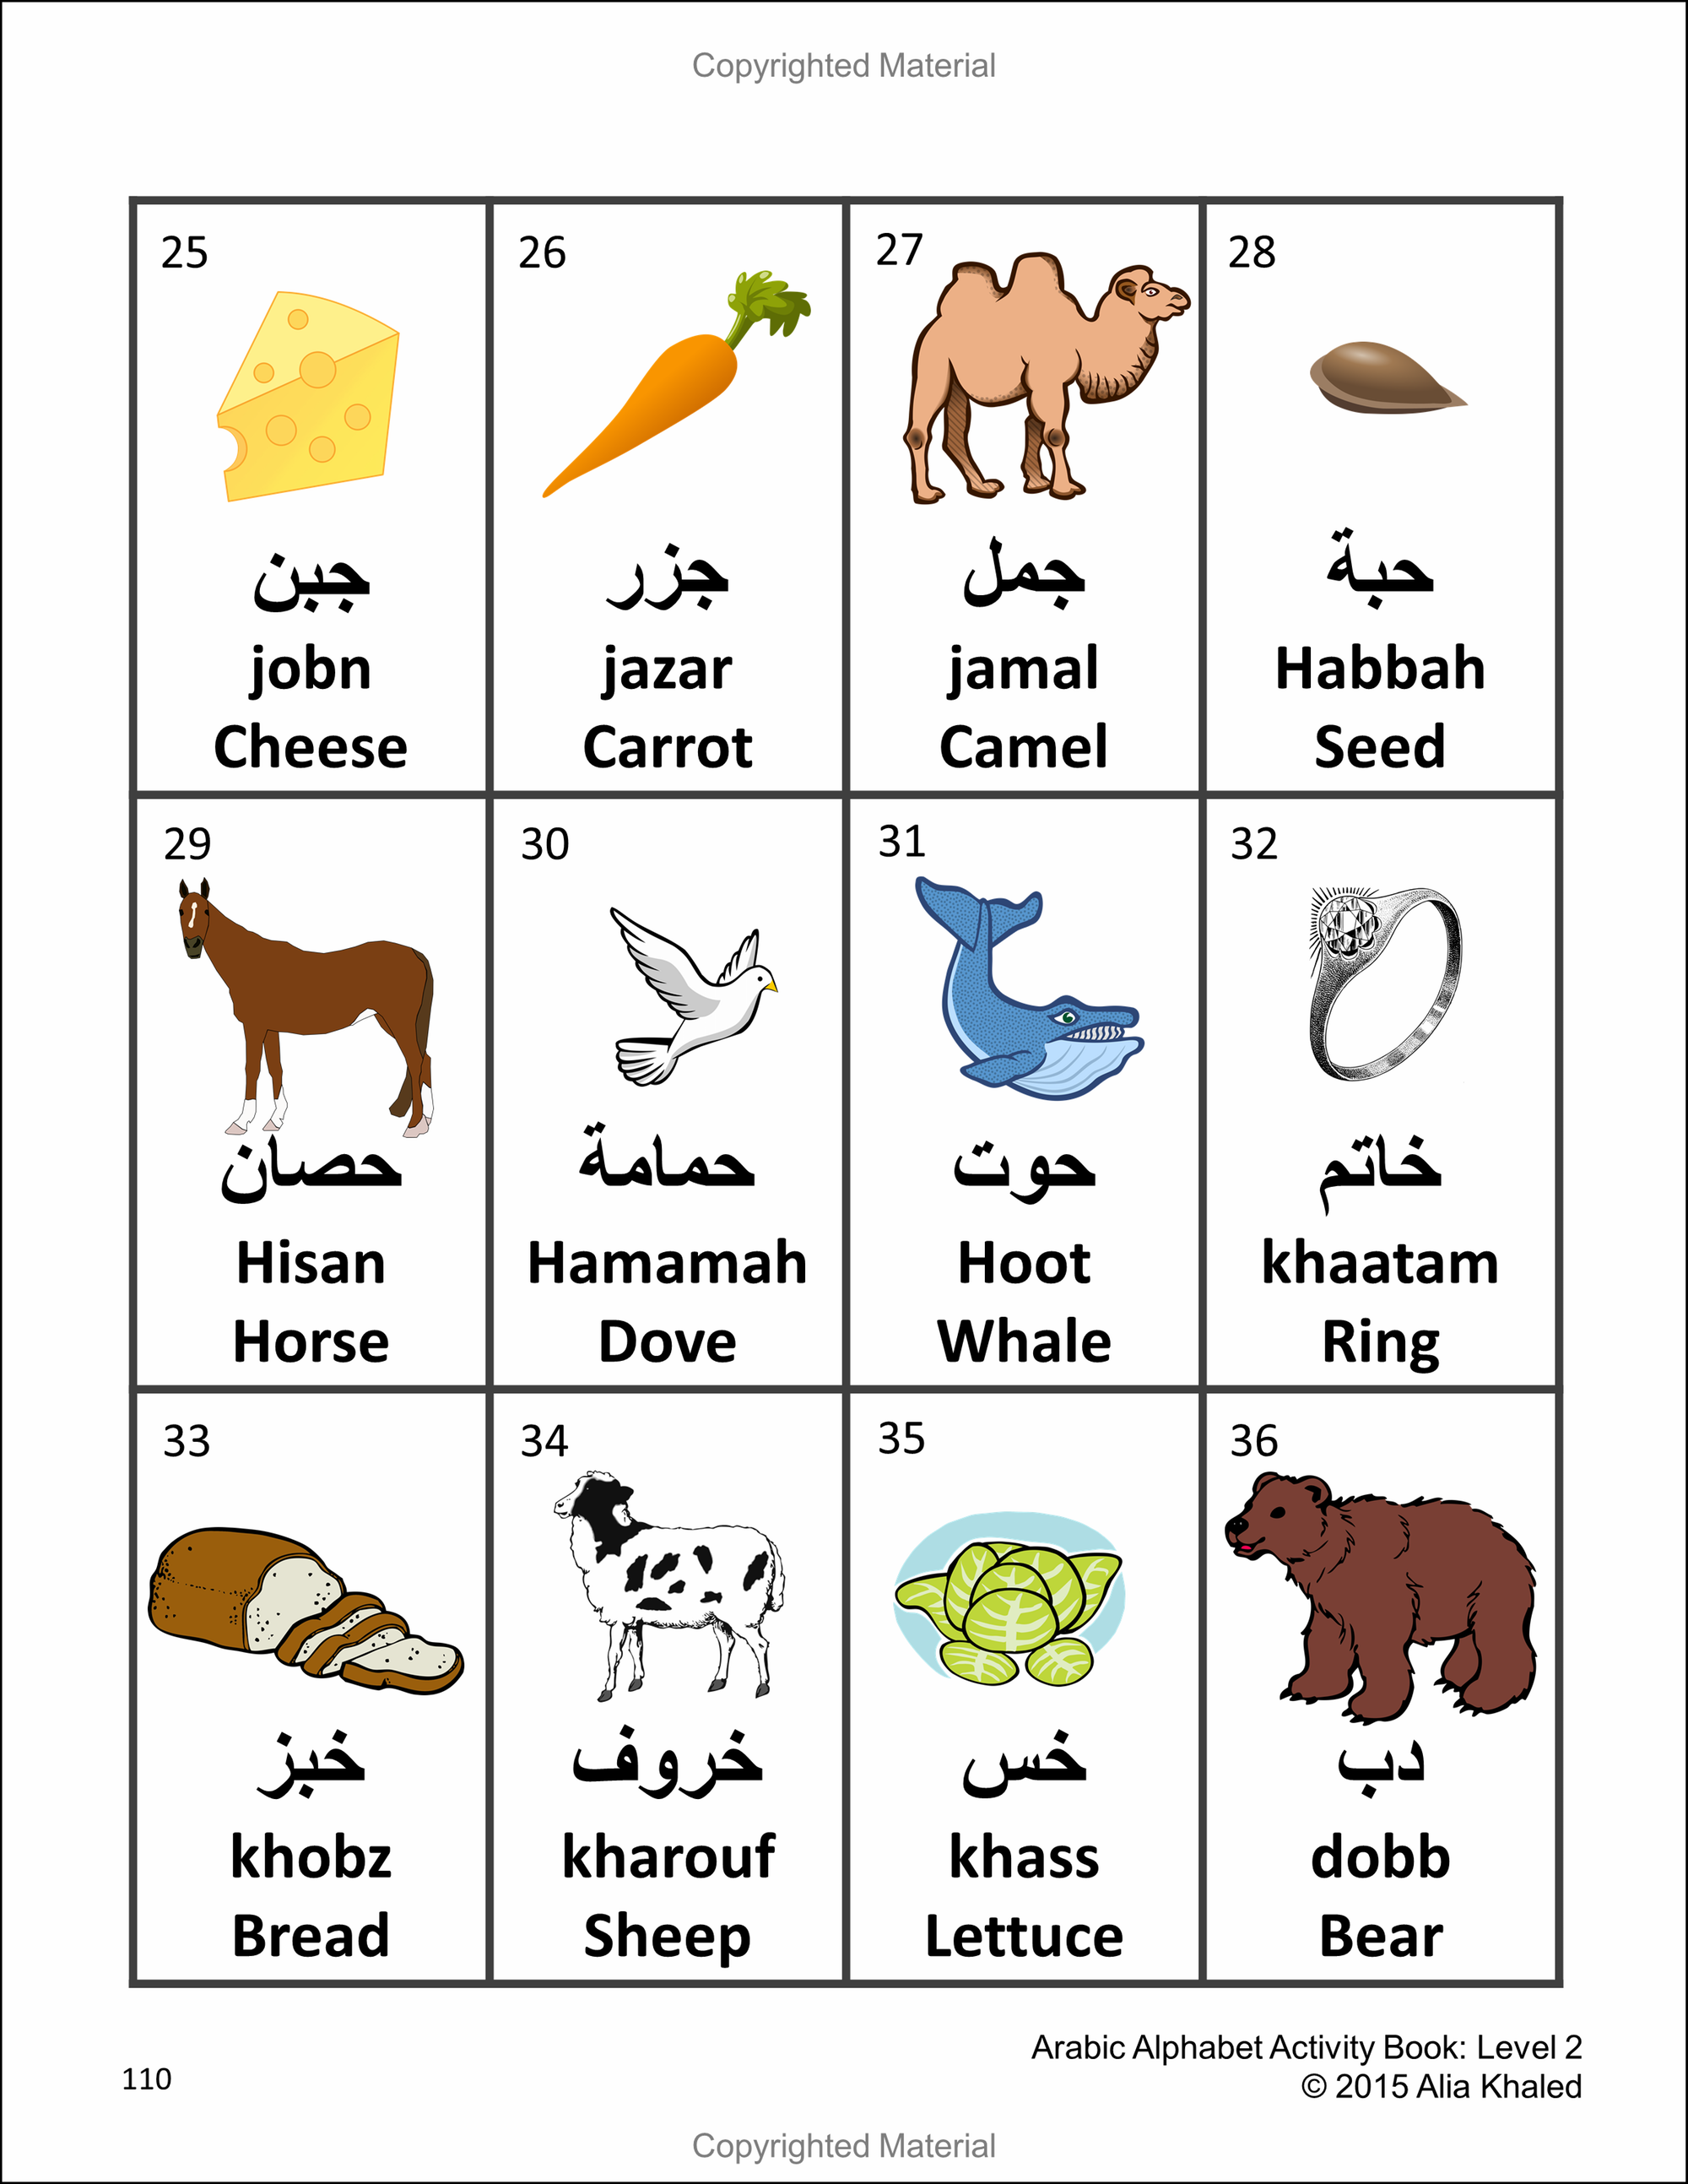 Arabic Alphabet Activity Book Level 2 Colored Edition